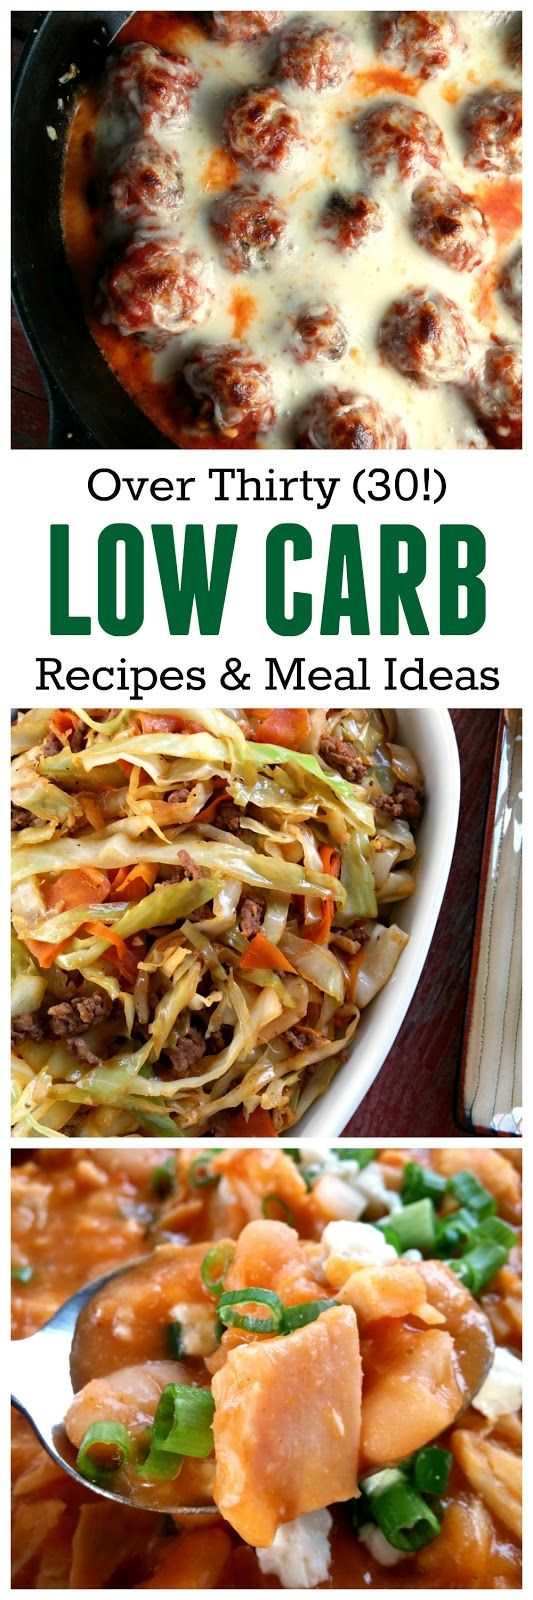 Essen Idee My Low Carb Weight Loss Plan Food Pinterest Gesundes Leben